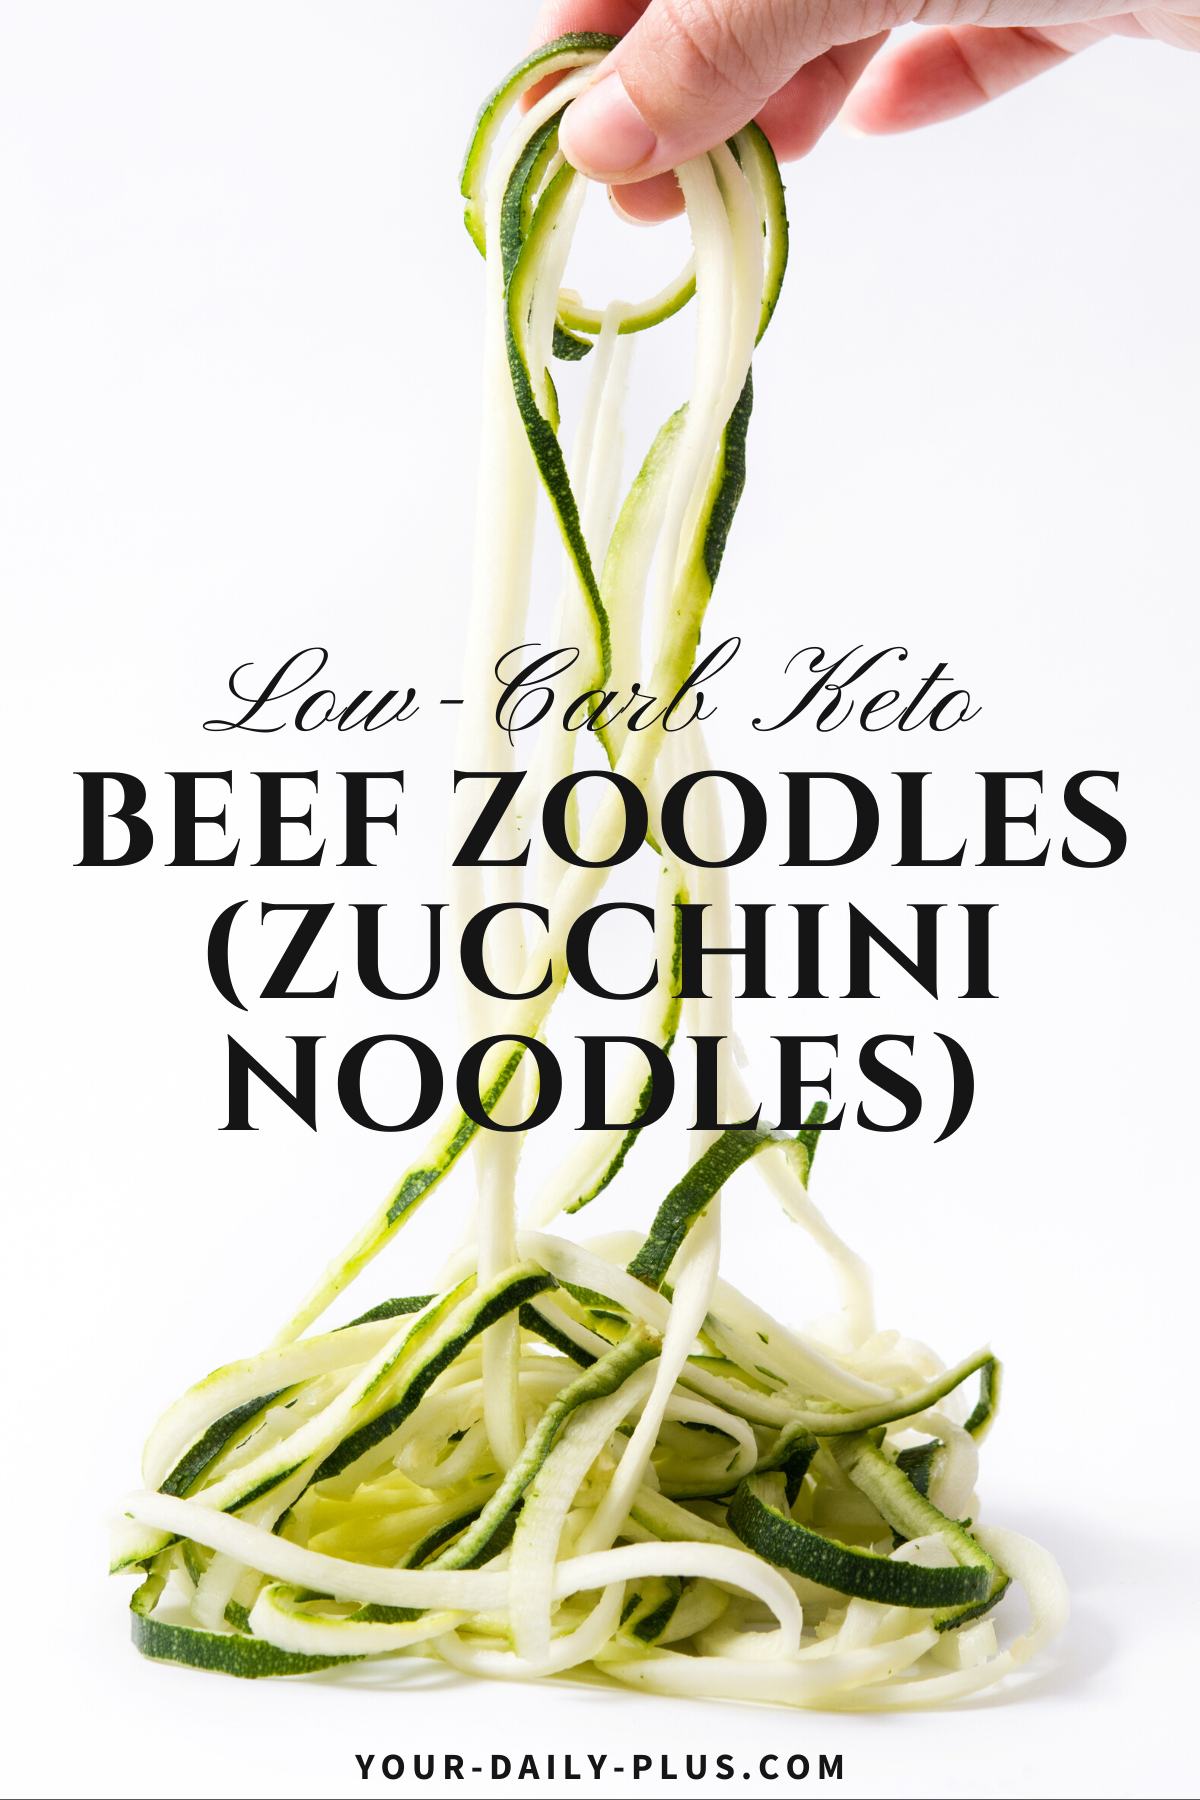 You're going to love these creamy noodles that are all Keto and full of flavor. We've subbed traditional noodles with zucchini noodles for bold flavor but a totally noodle texture. The noodles are paired with creamy coconut milk for a totally beefy sauce you'll love.